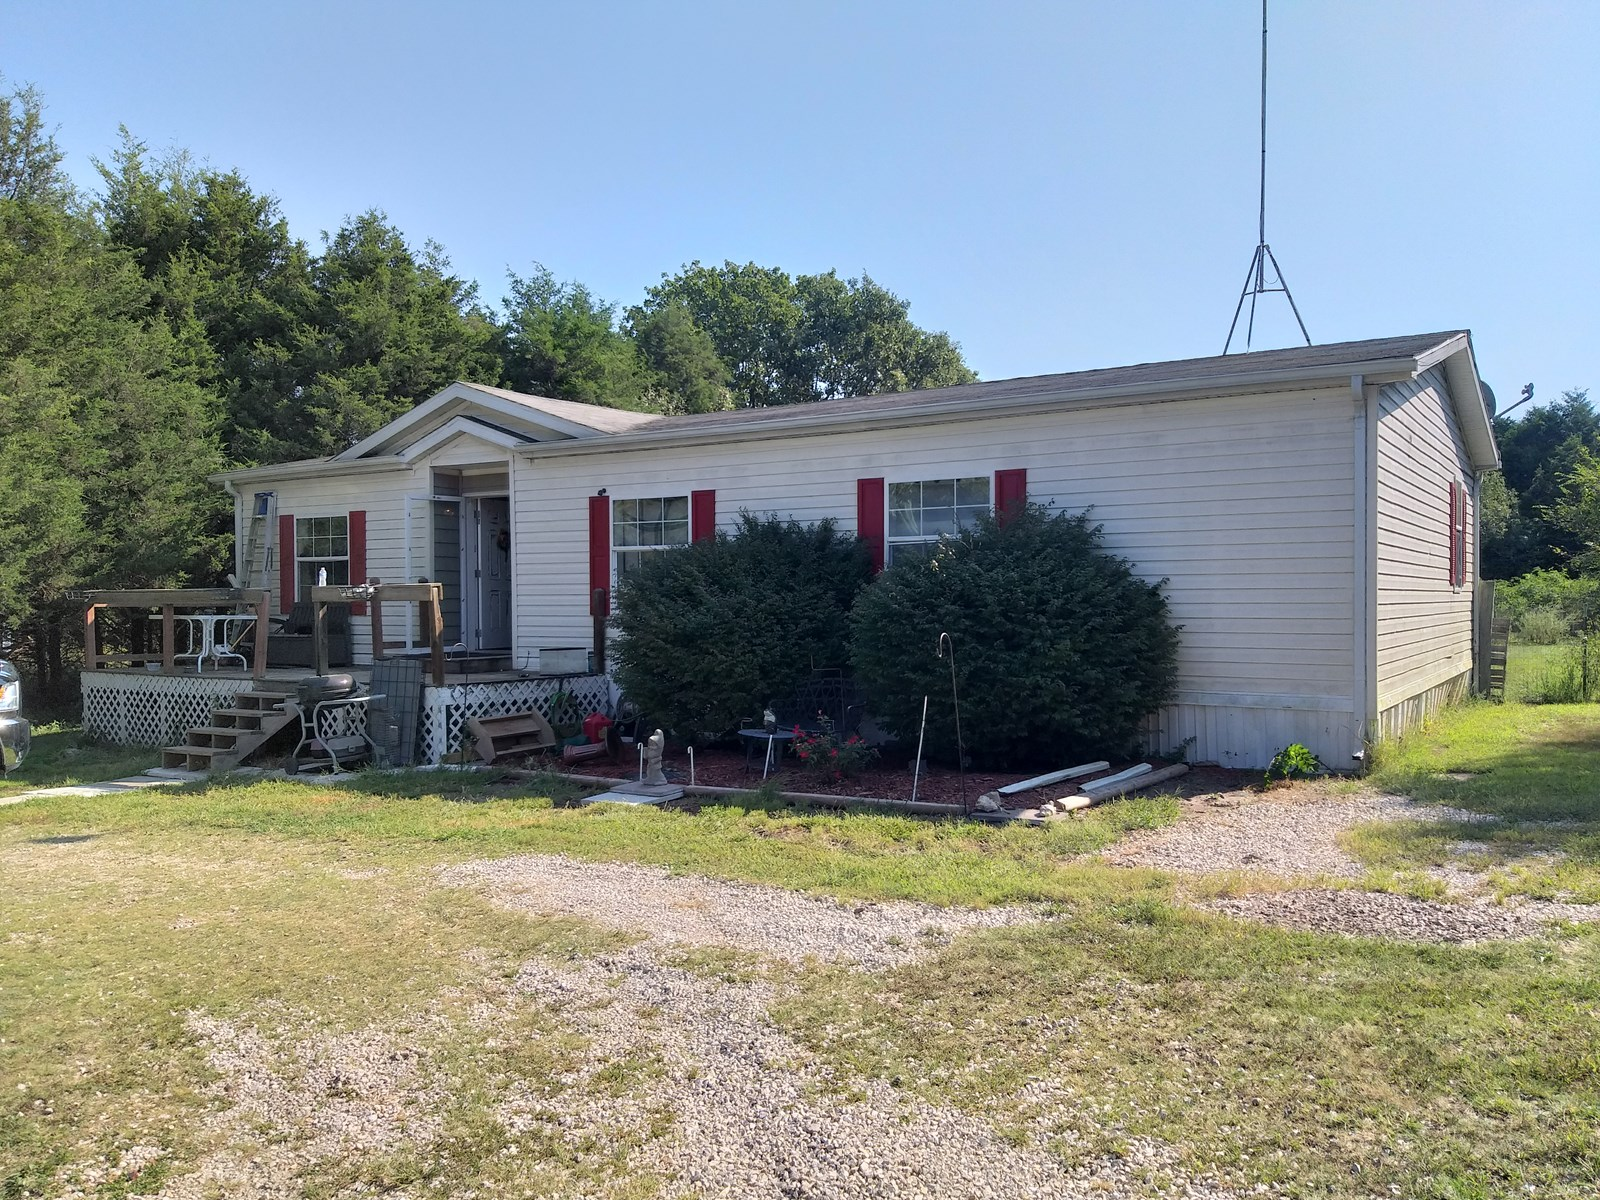 Manufacture home for sale on 2 acres in Camden County, MO